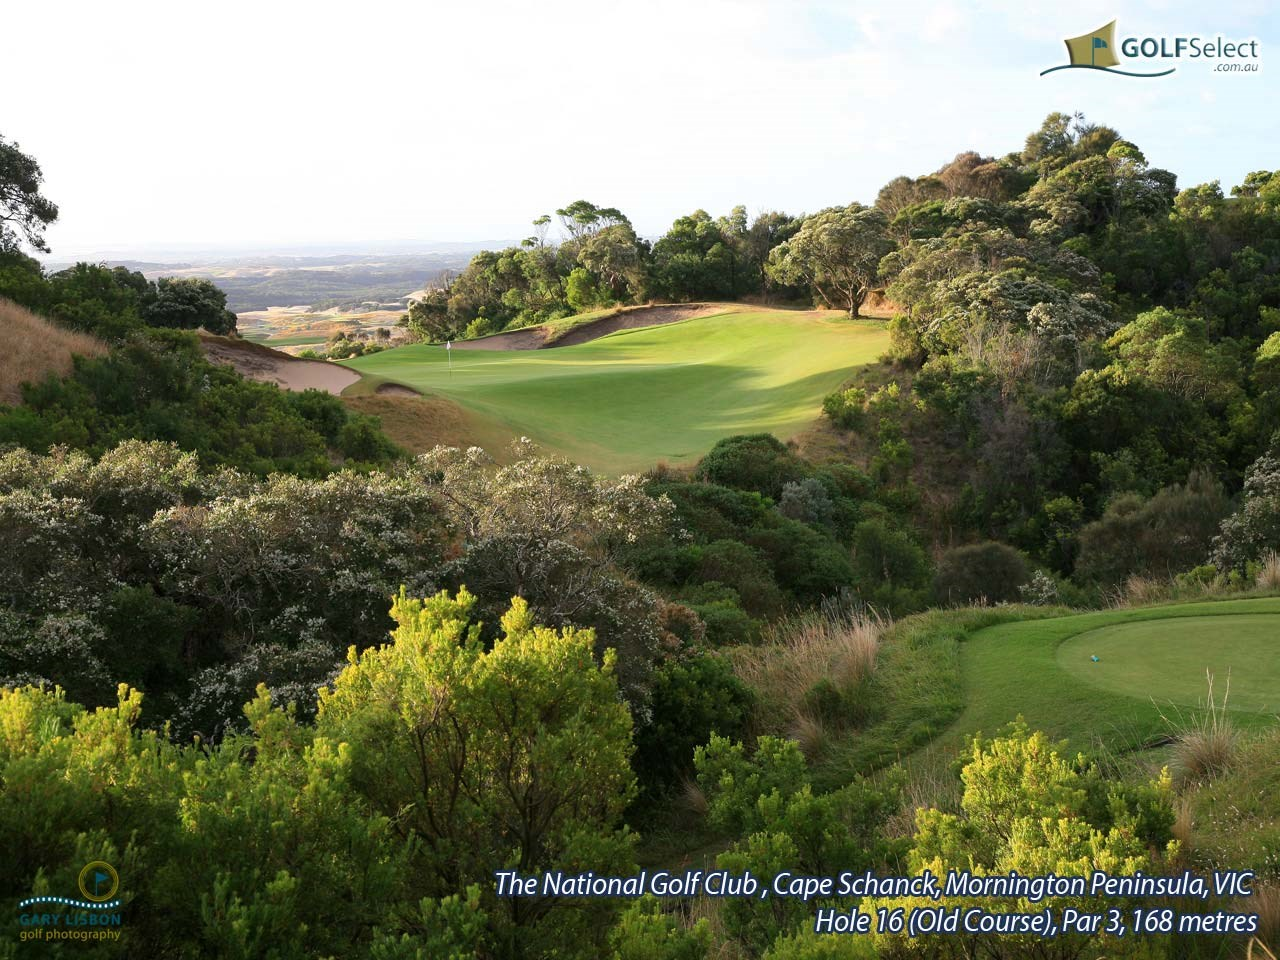 The National Golf Club (Old Course) Hole 16, Par 3, 168 metres